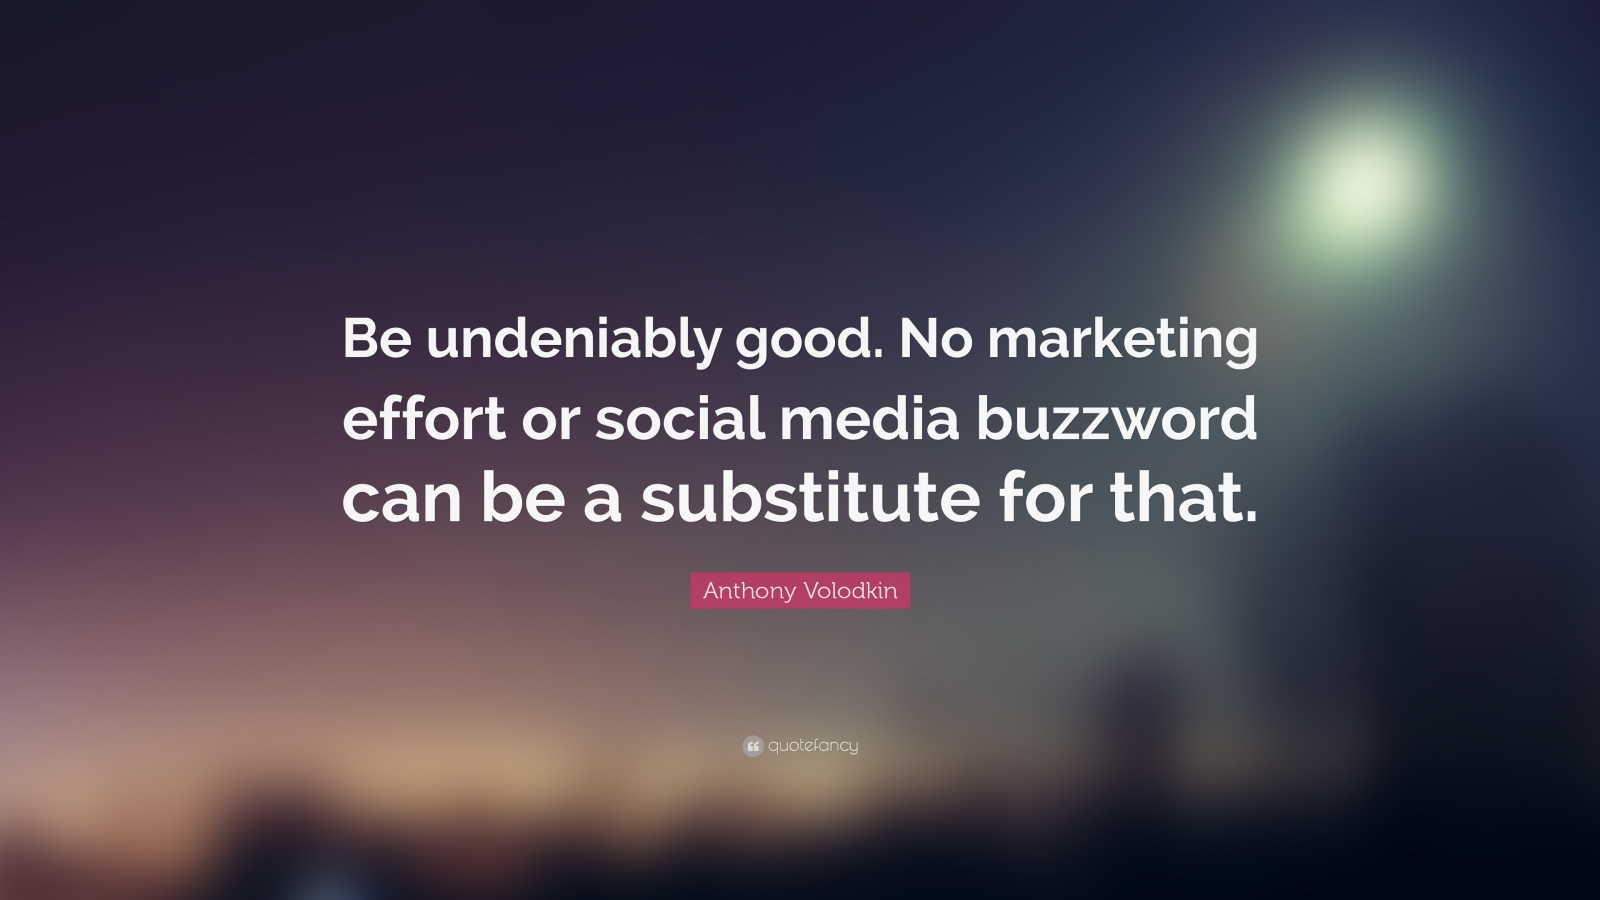 Industrial marketing inspirational quote